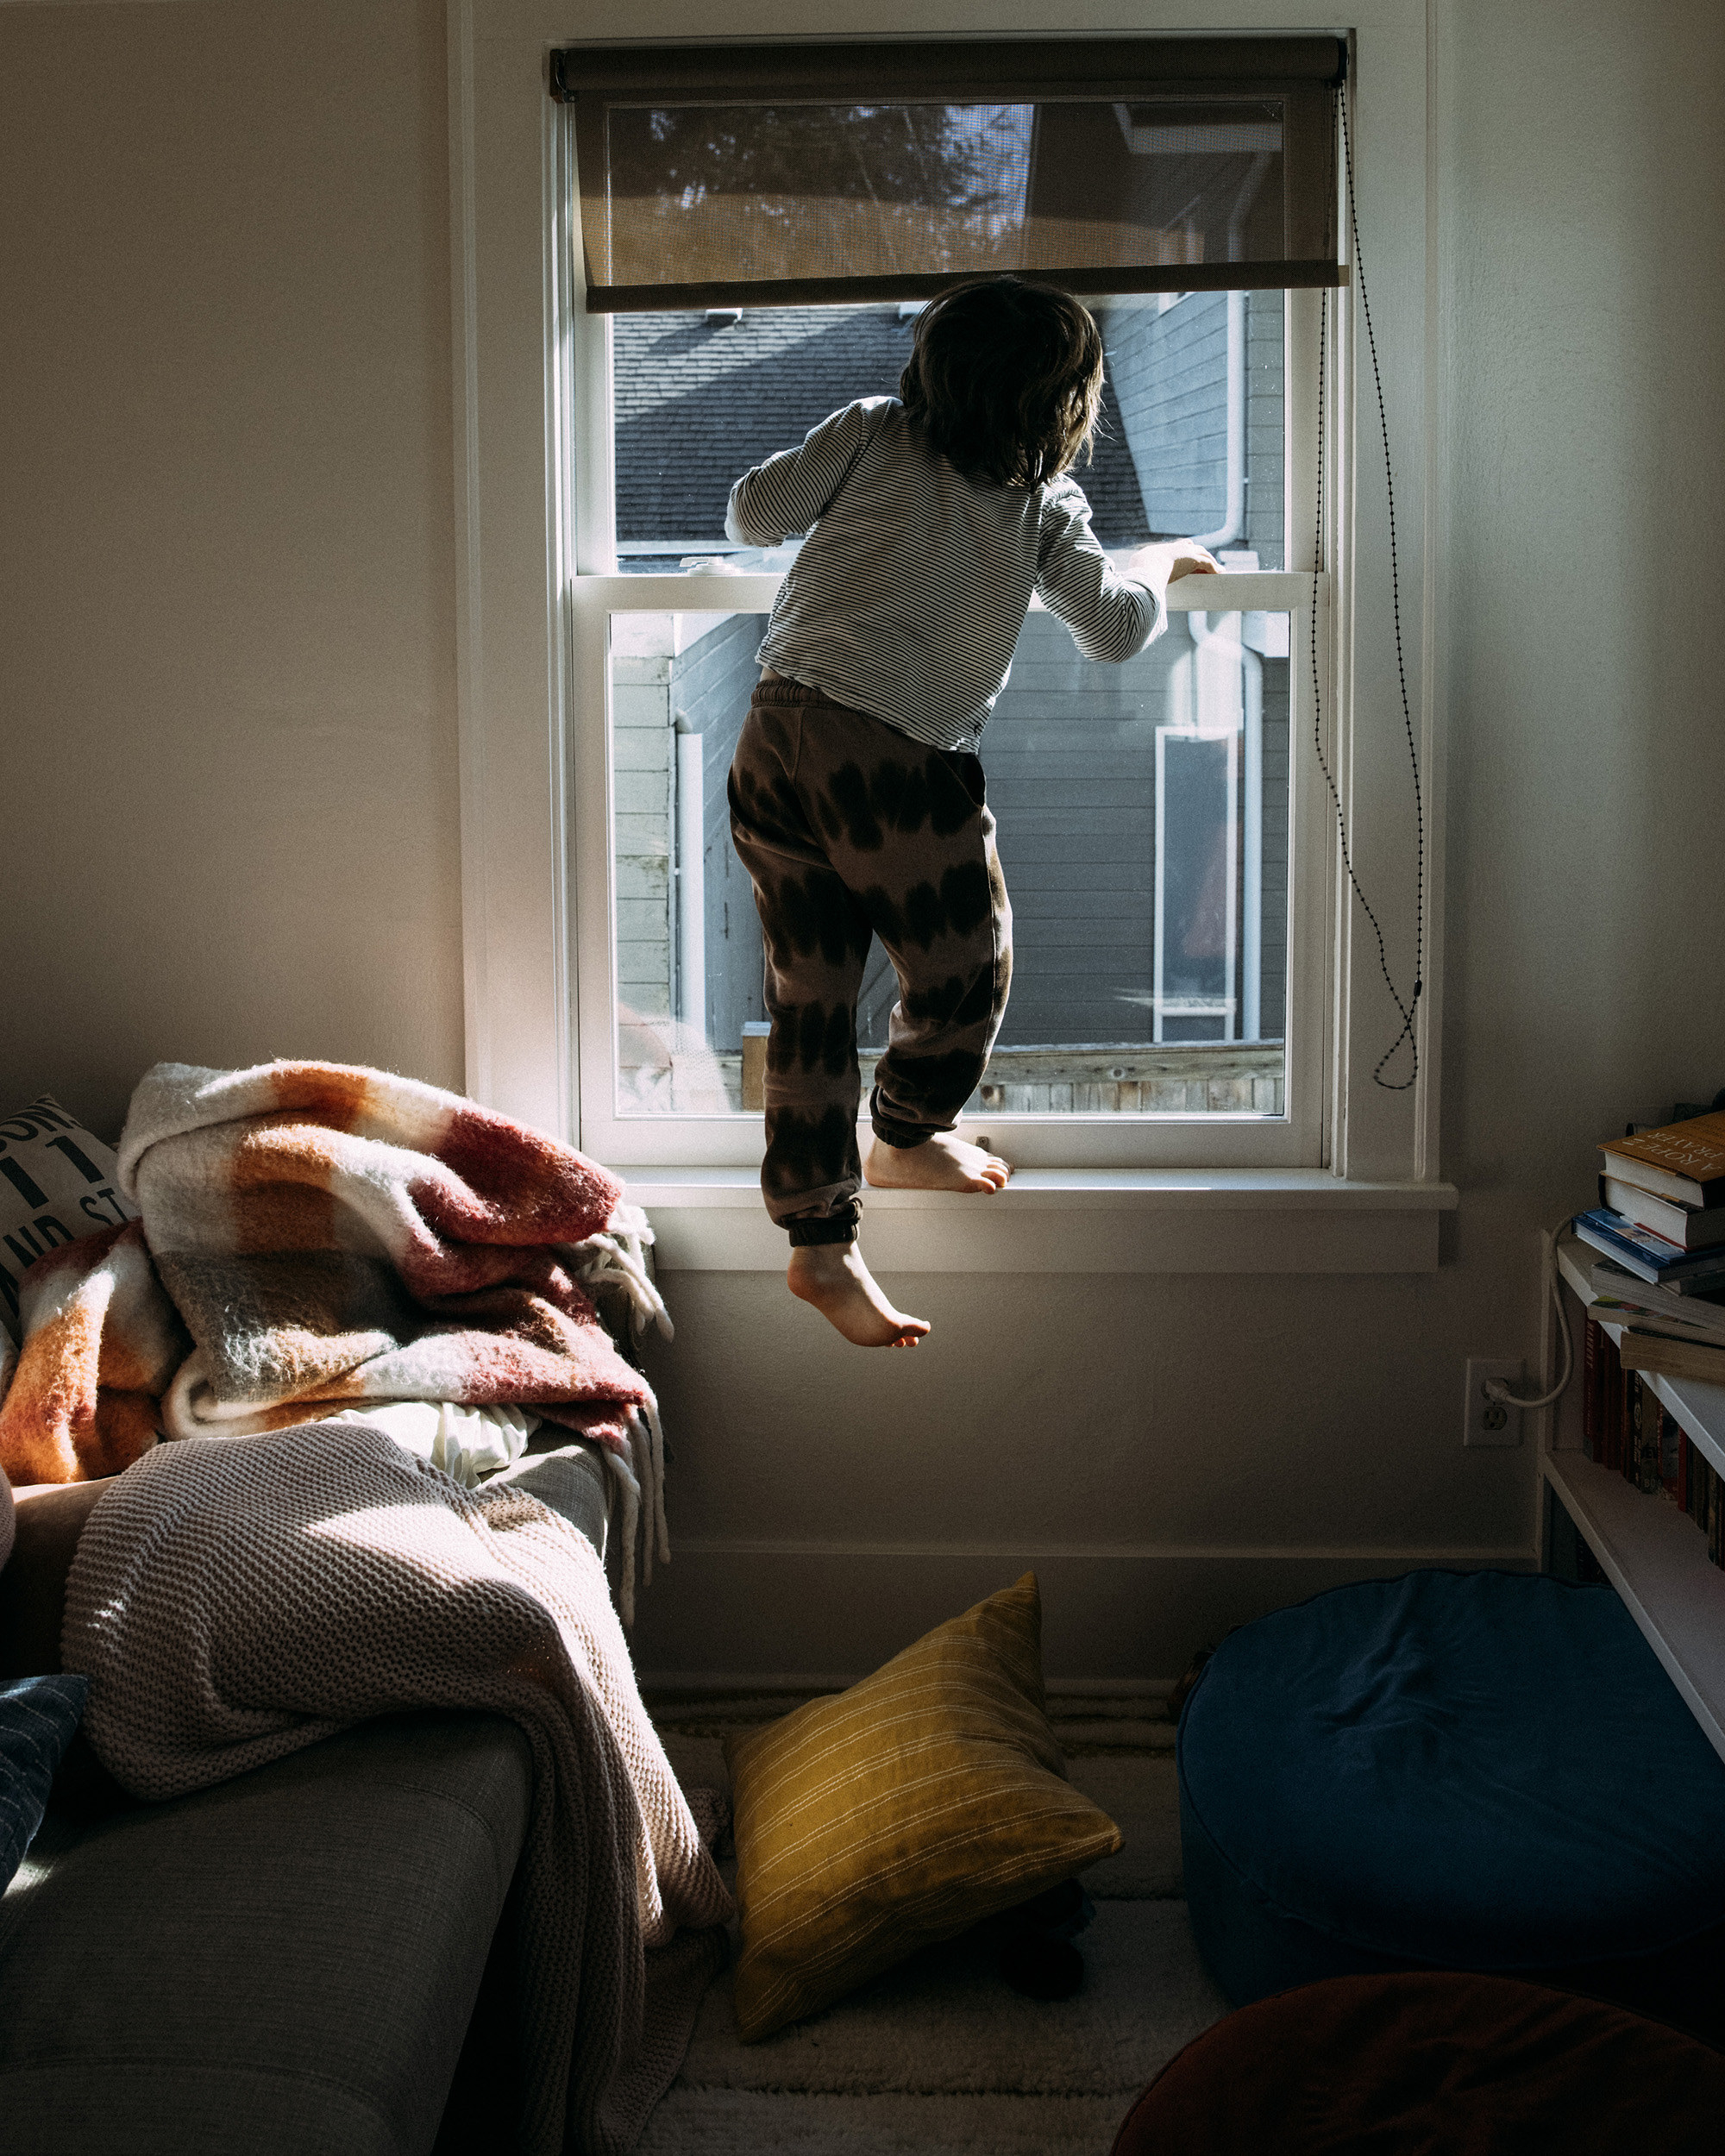 A toddler stands on a window ledge with pillows and books strewn about the floor